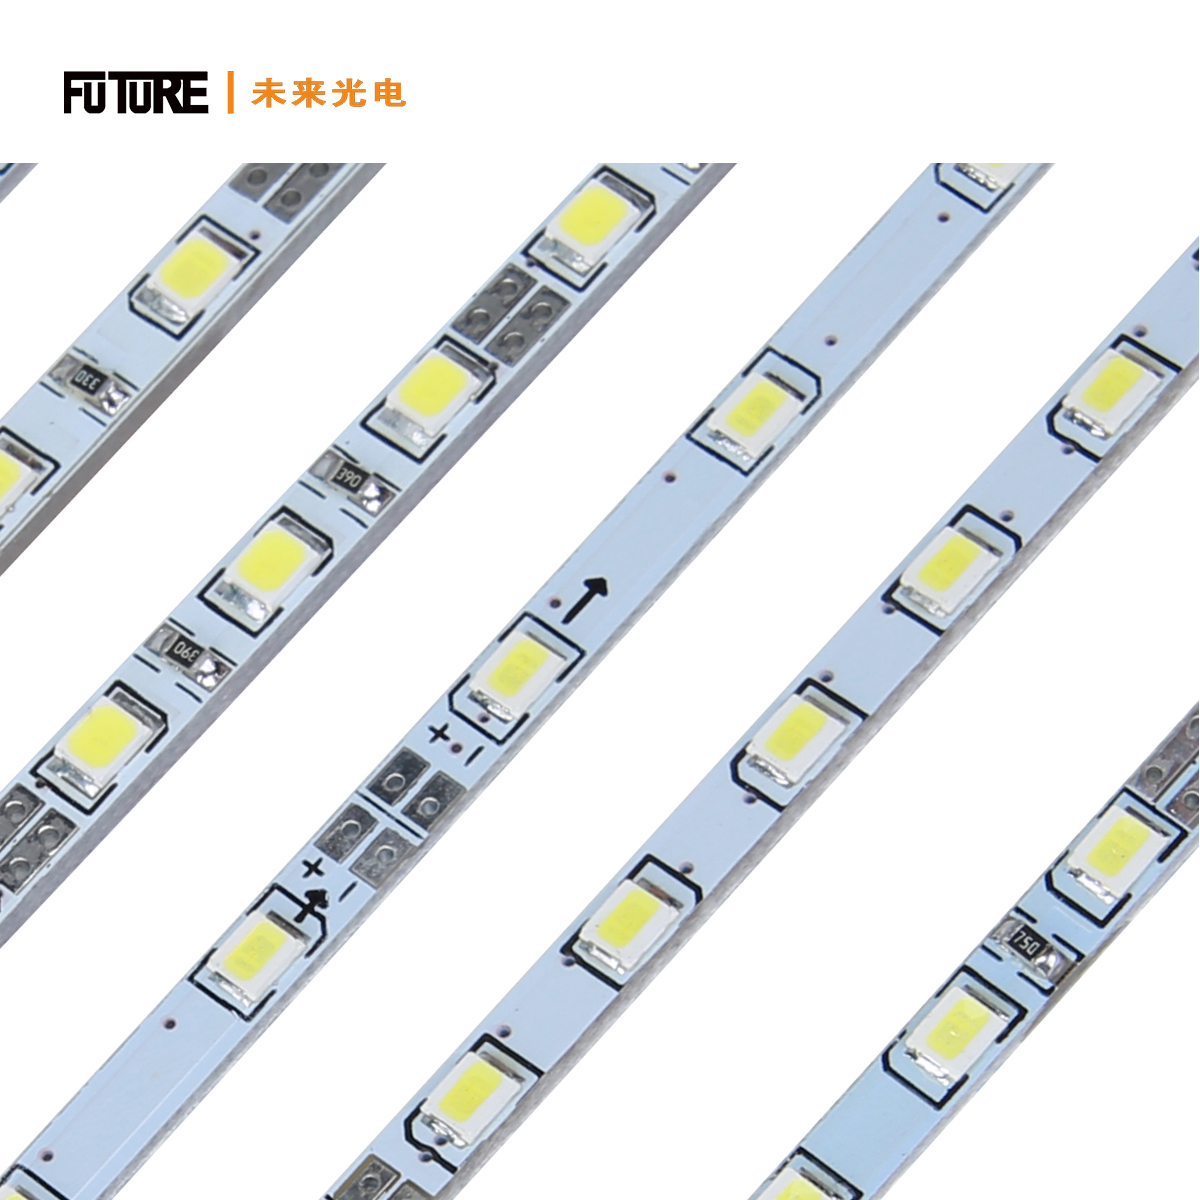 2835 Edge-lit Rigid Led Tape Bar 60leds/m